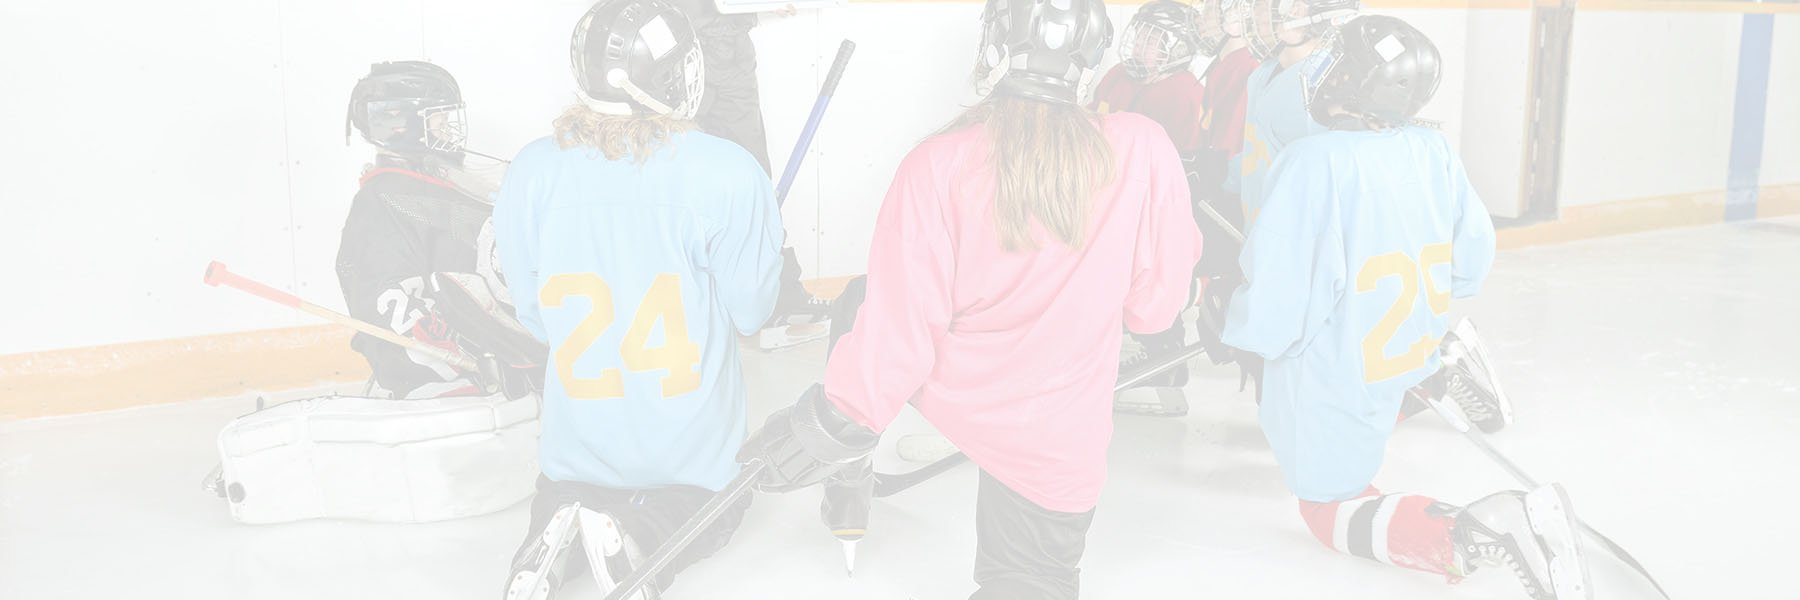 hockey club and league management software